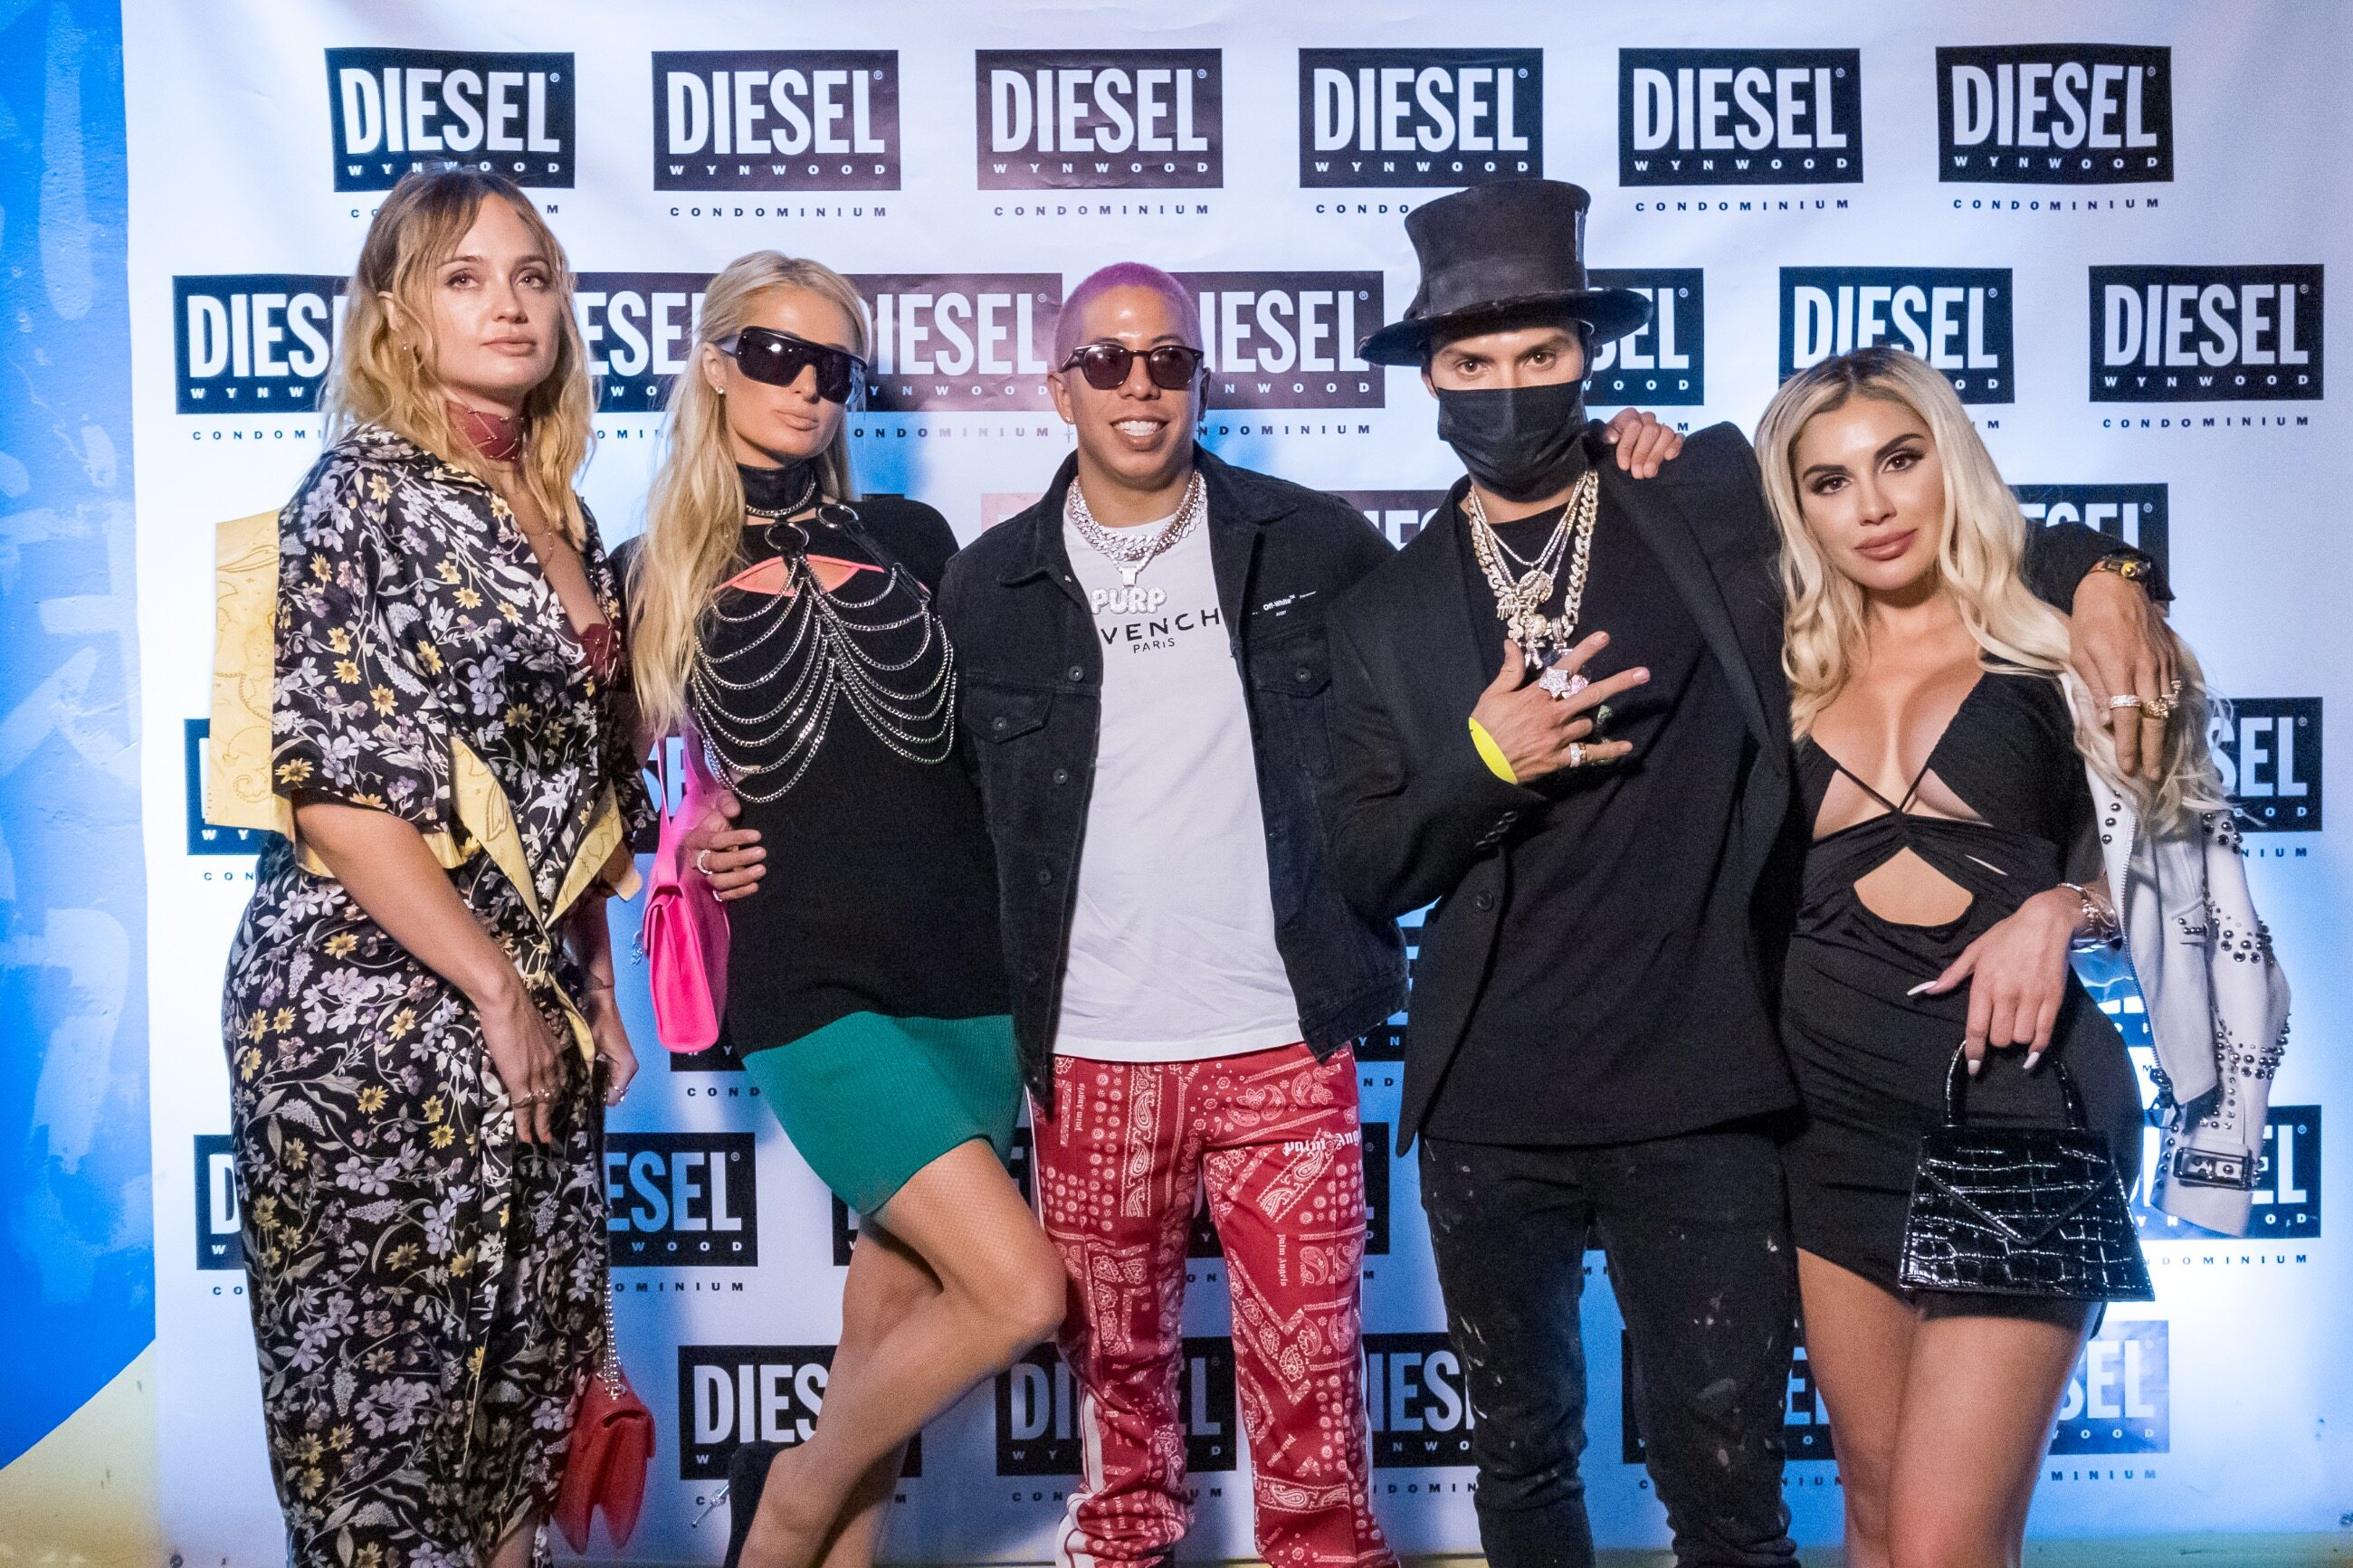 Diesel Wynwood Party